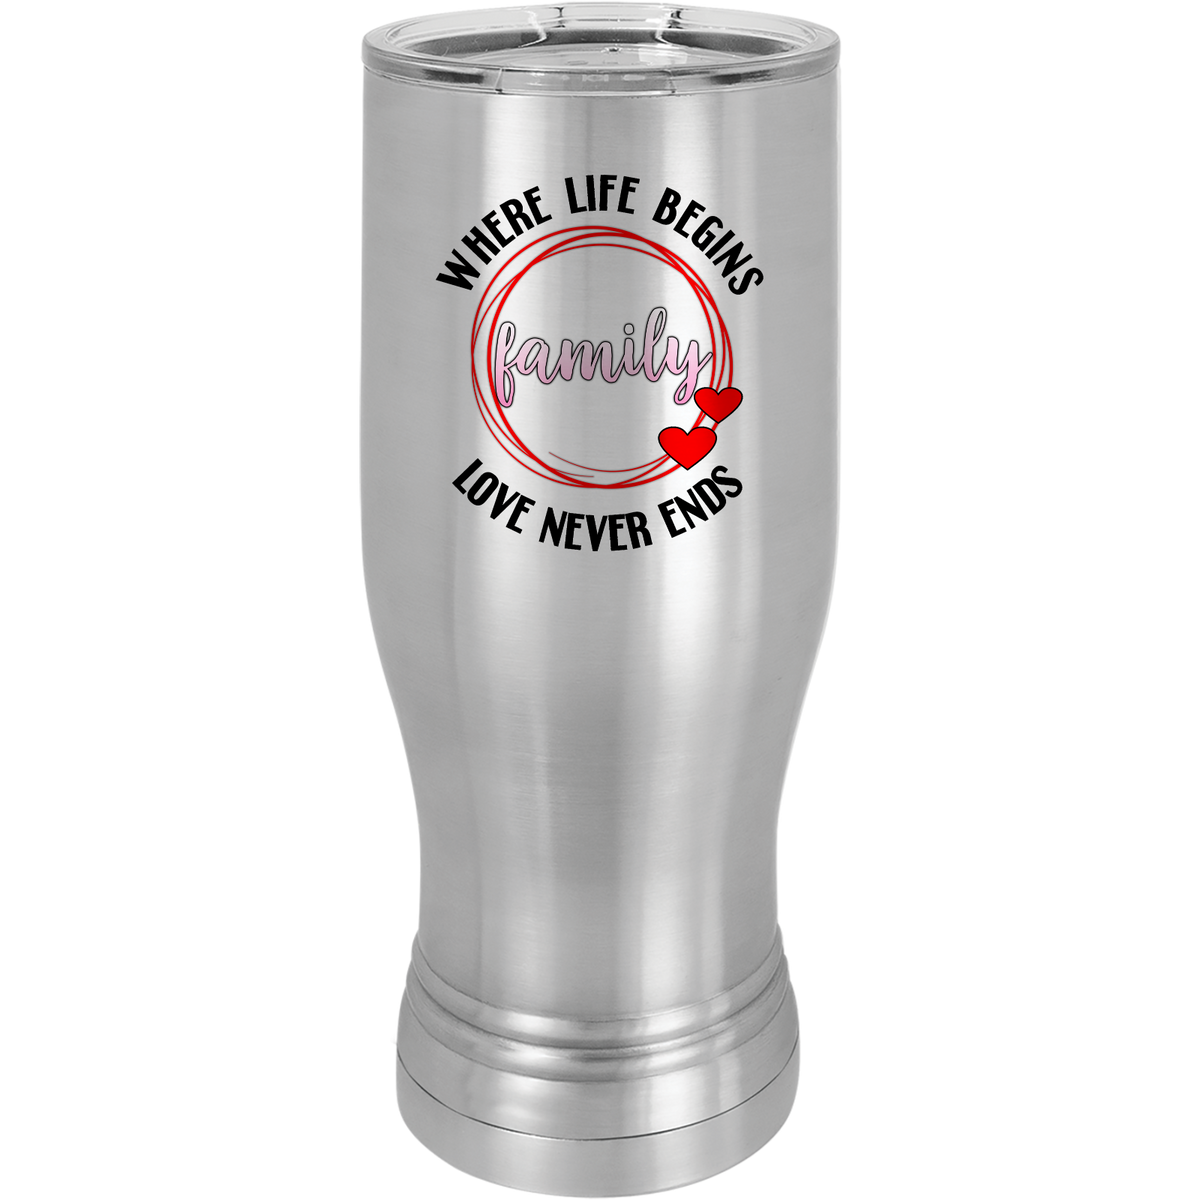 Where life begins family love never ends - 20oz. Pilsner with Clear Lid